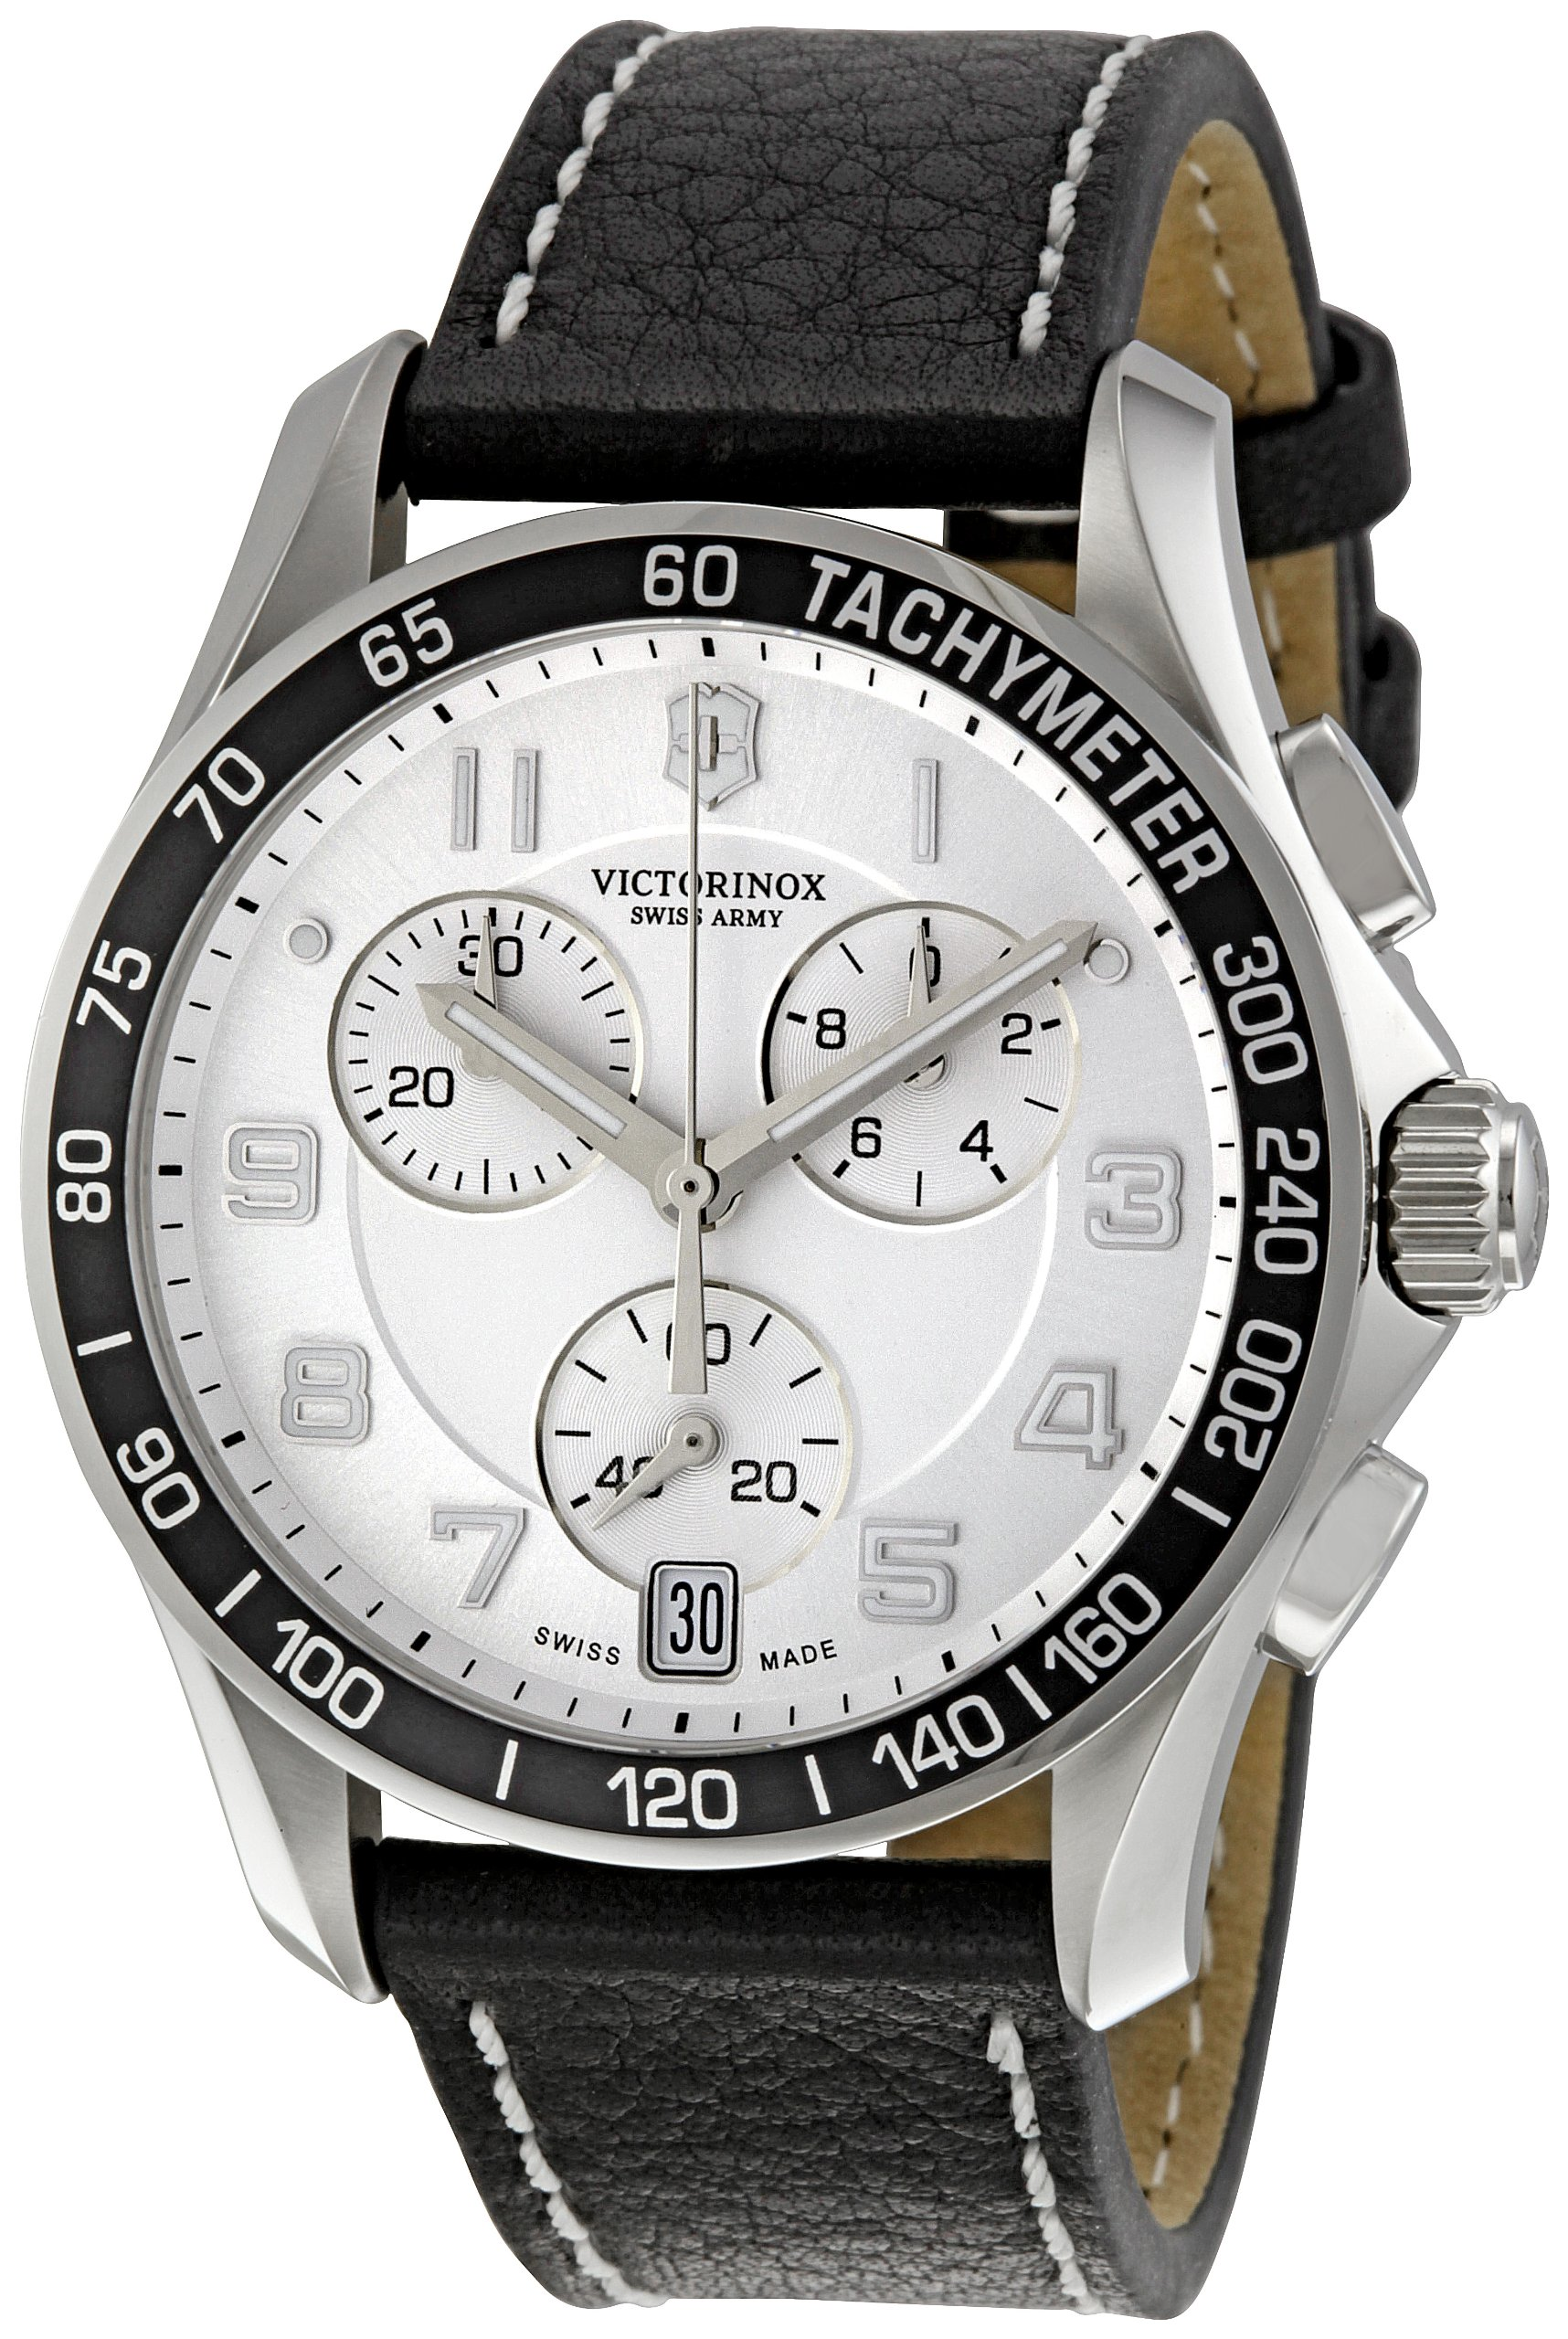 Victorinox Swiss Army Men's 241496 White Dial Chronograph Watch